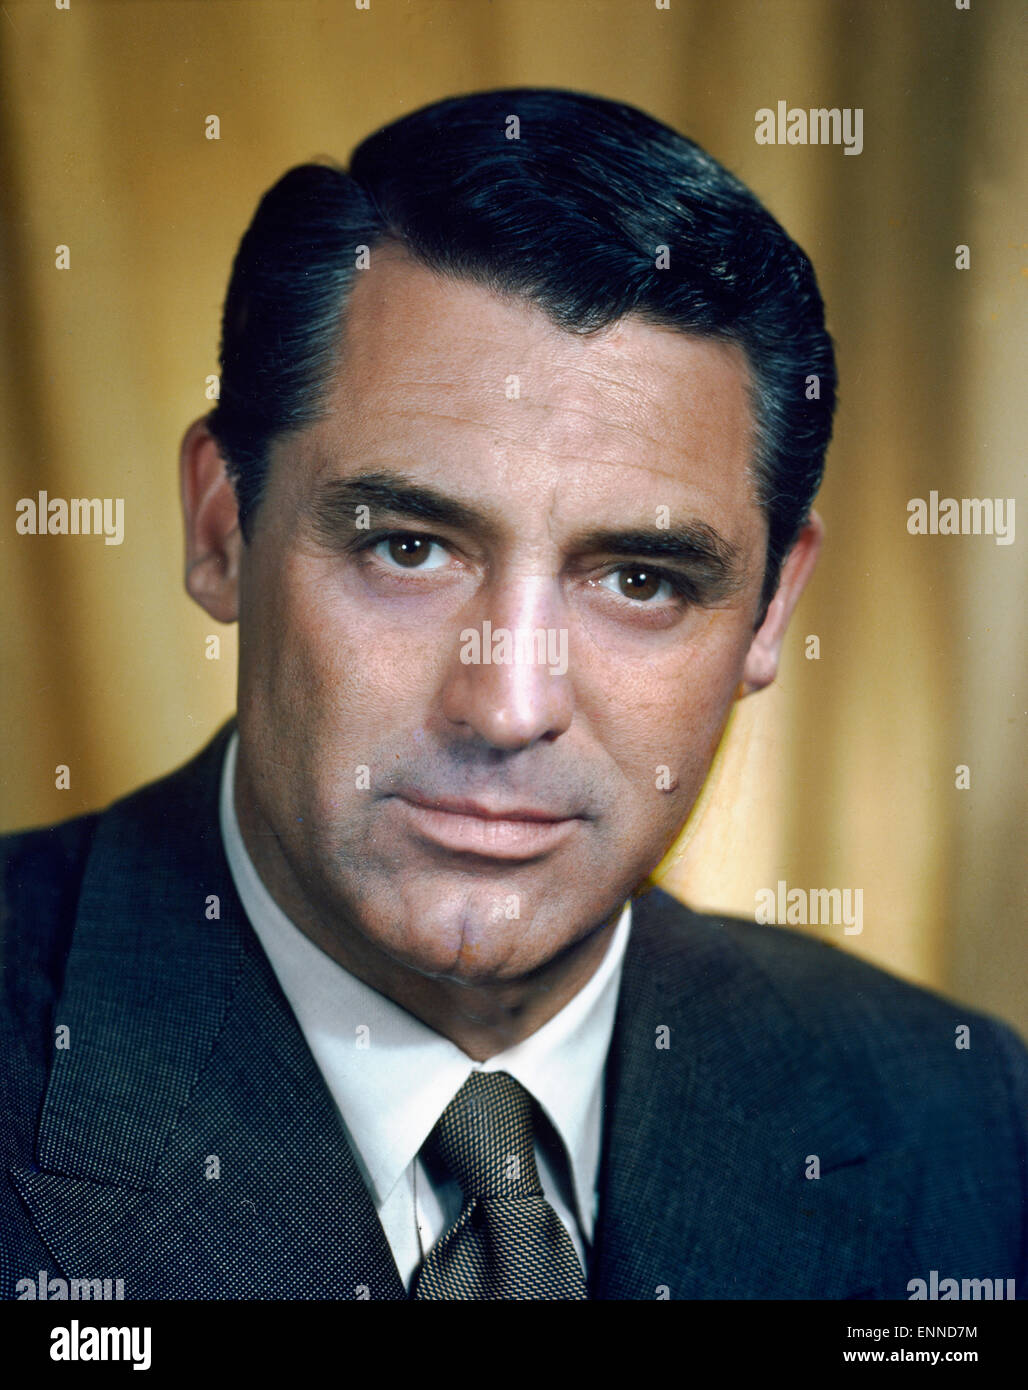 der amerikanische schauspieler cary grant ca ende 1950er jahre stock photo 82220648 alamy. Black Bedroom Furniture Sets. Home Design Ideas